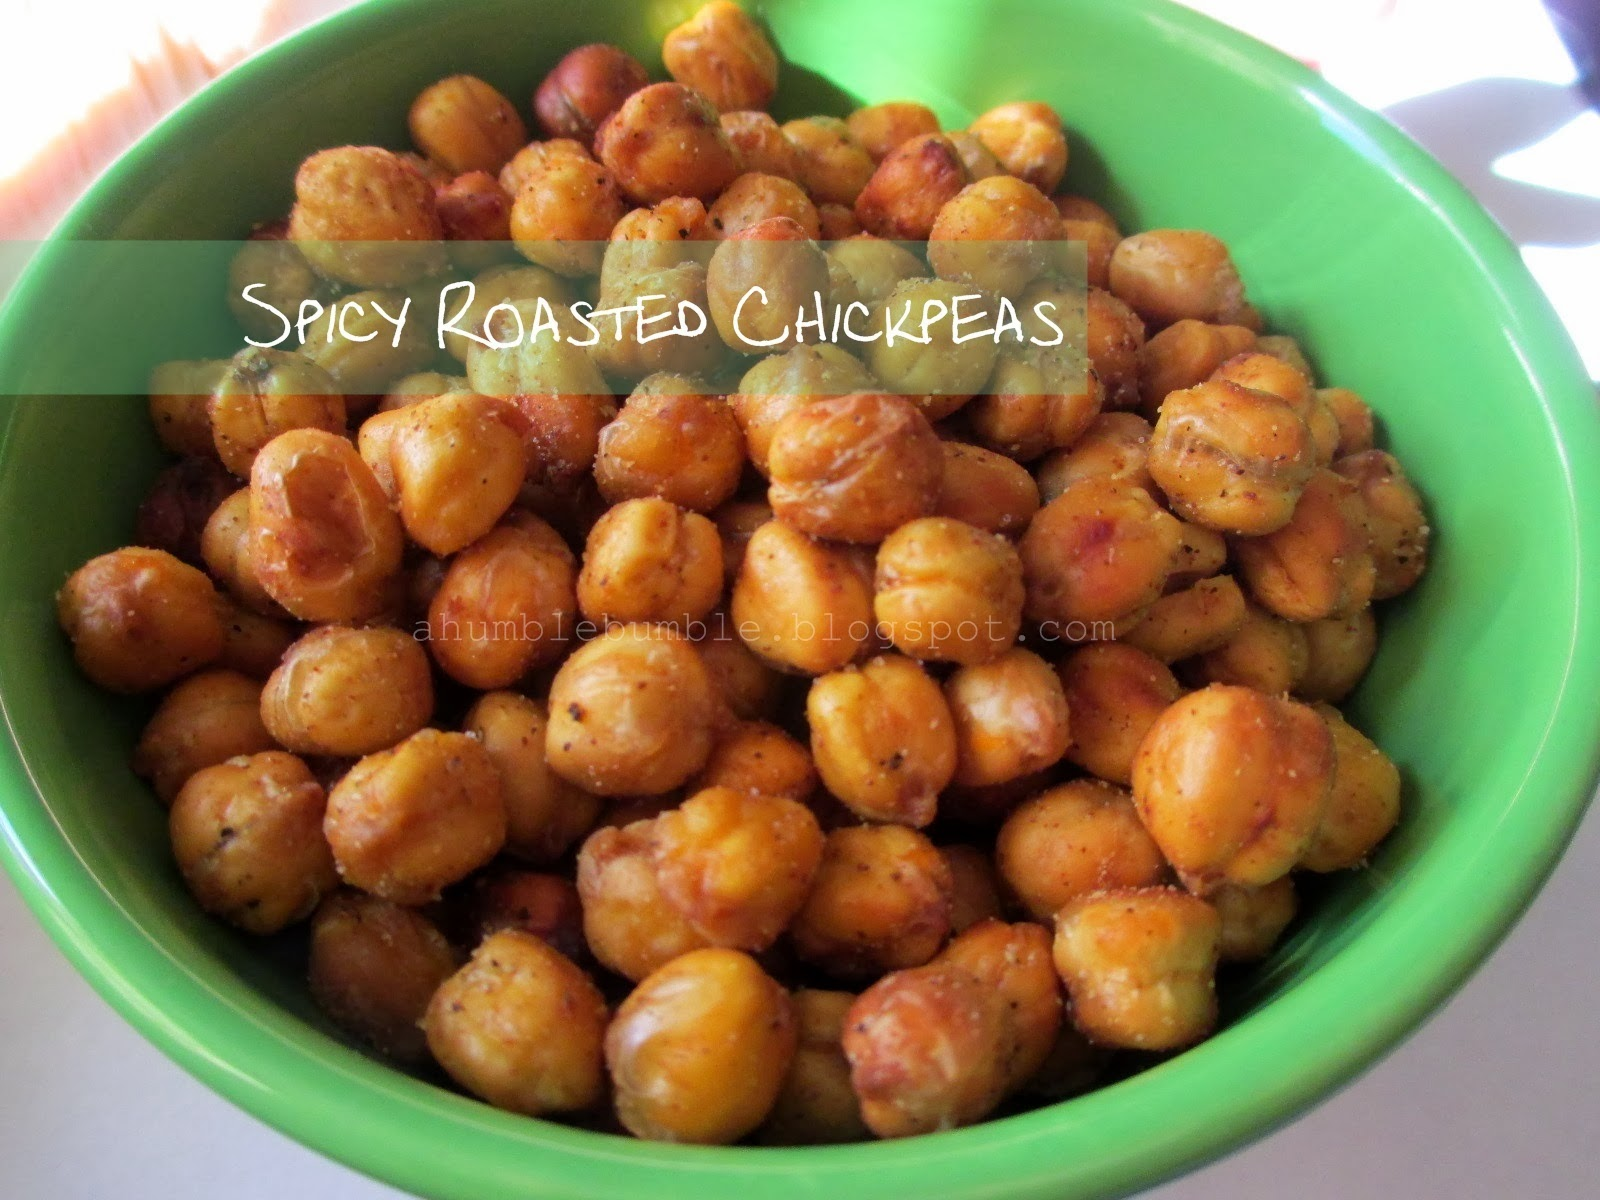 Humble Bumble: Spicy Roasted Chickpeas Recipe